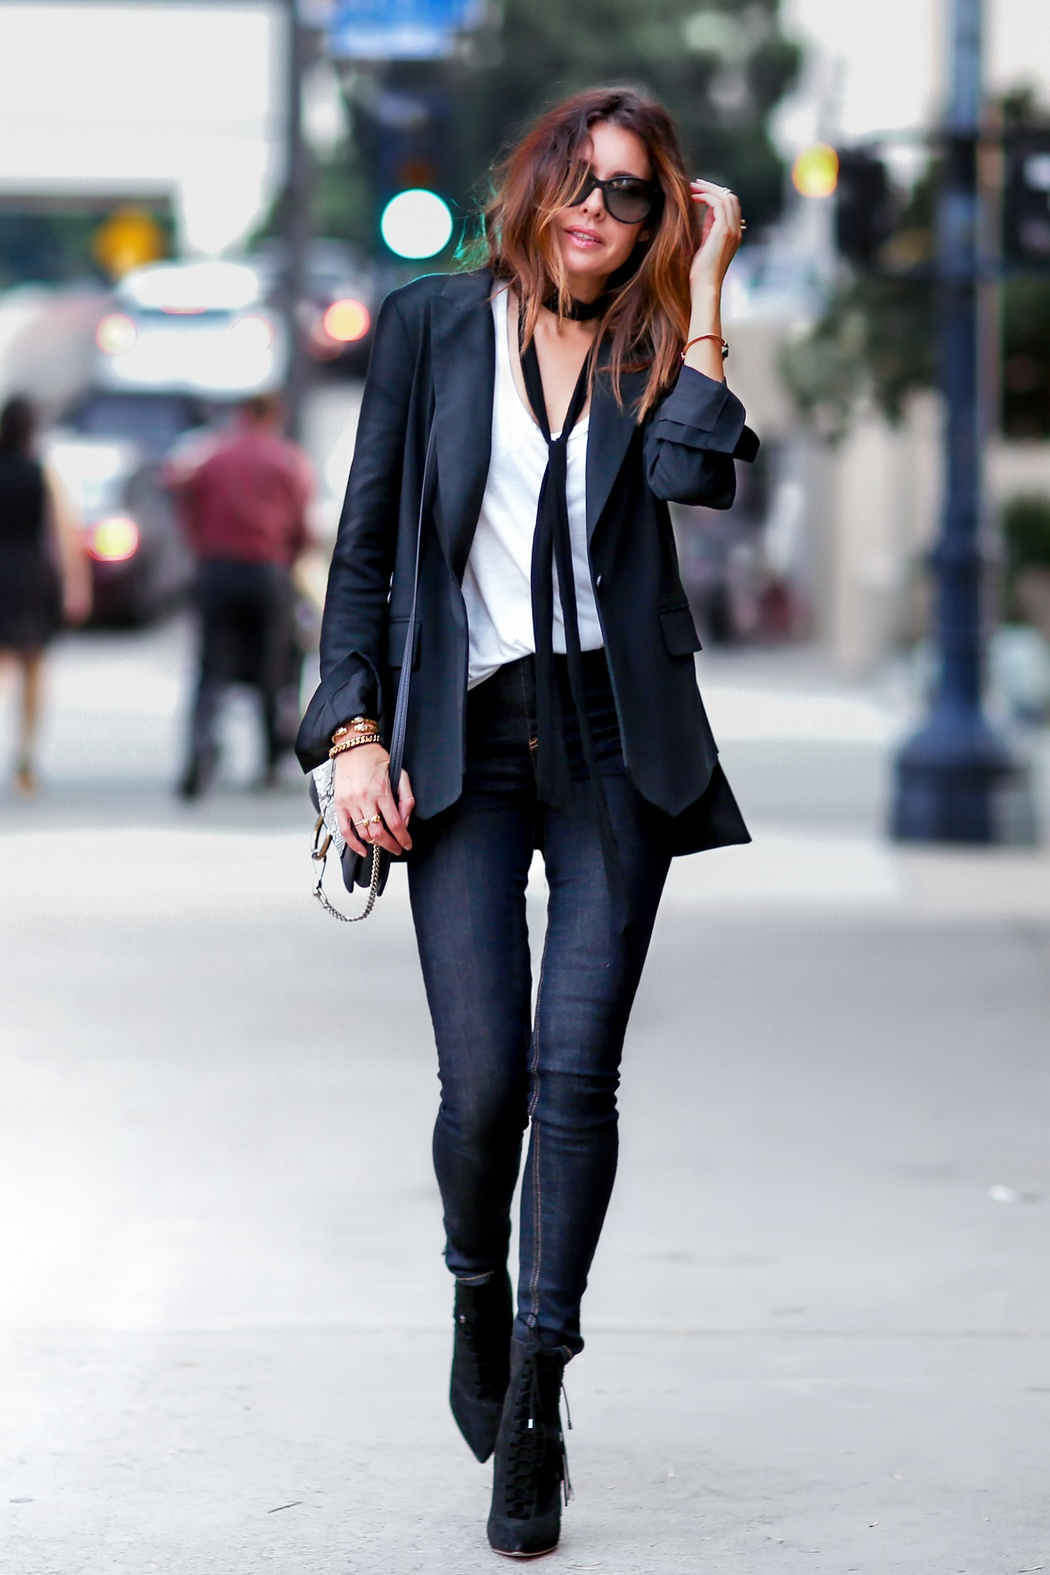 Erica Hoida goes total tomboy with this black blazer, white shirt, and skinny black tie combination. Blazer: Marissa Webb, Shirt: The Row, Jeans: Rag & Bone, Scarf: Chloe.